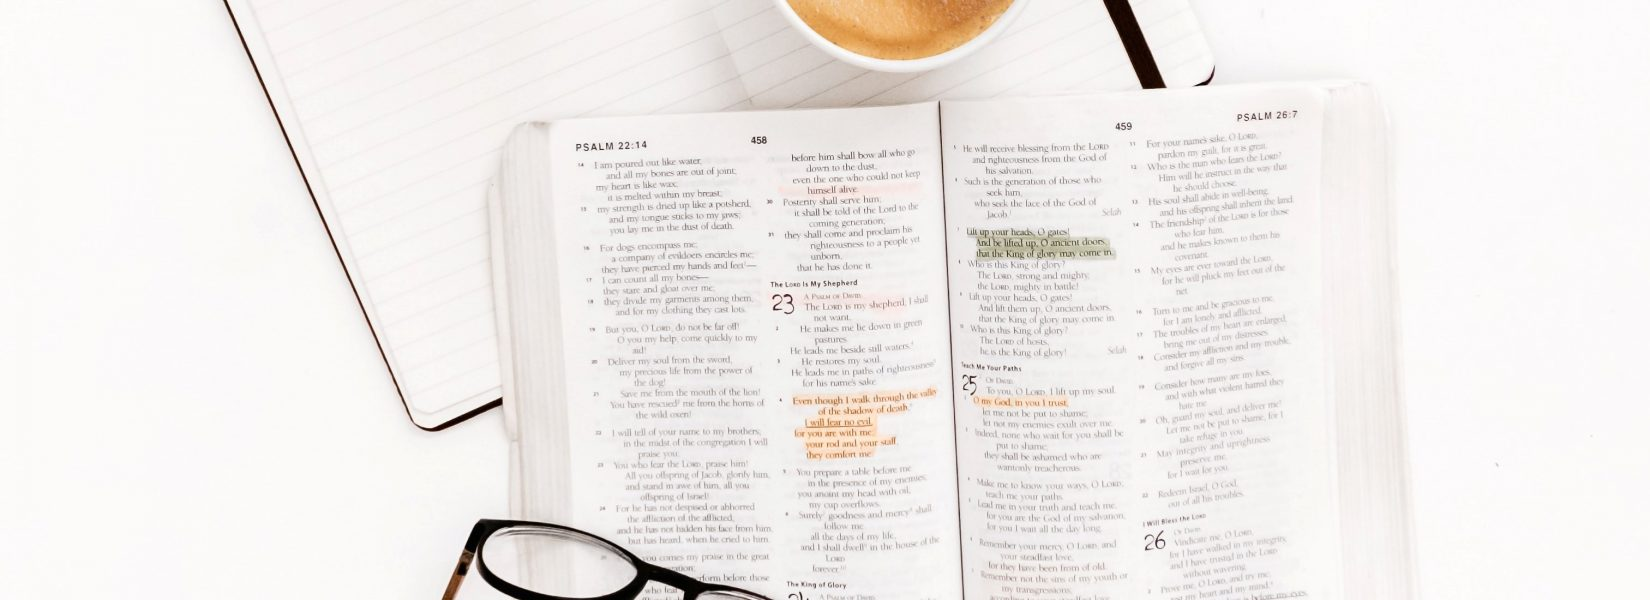 A Practical Guide on How to Study the Bible